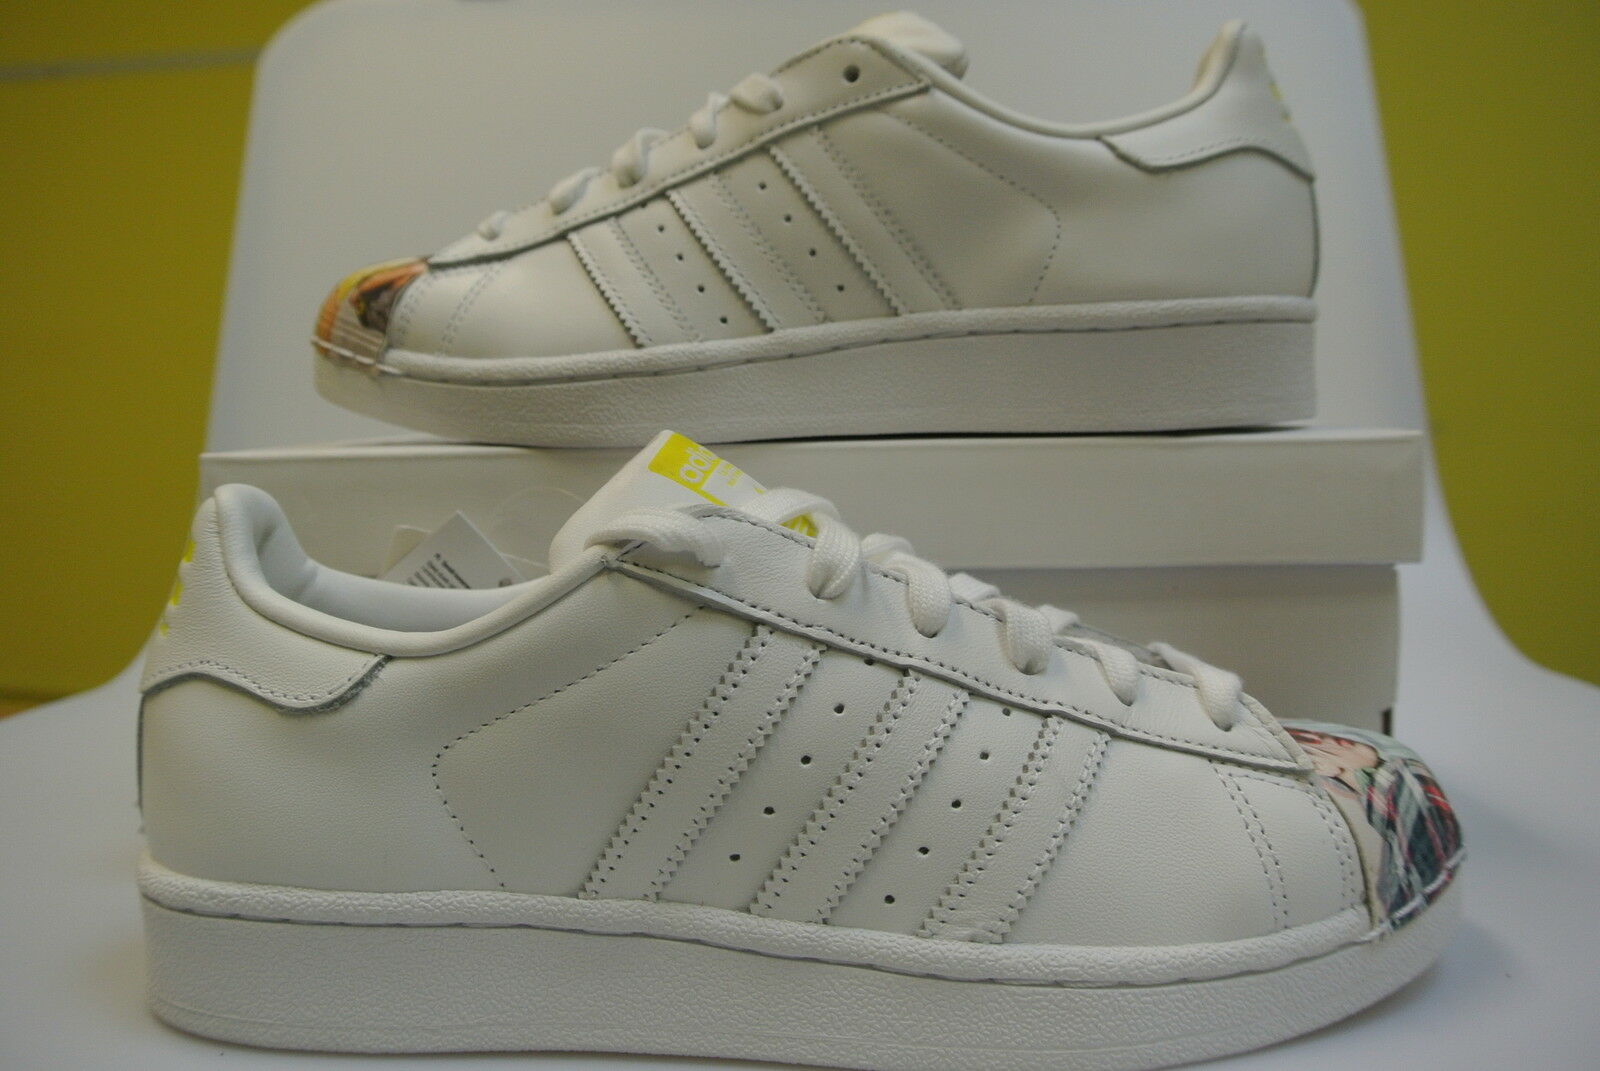 Adidas Superstar W Pharrell elegibles Williams supersh talla elegibles Pharrell nuevo con embalaje original s83363 4e8a86